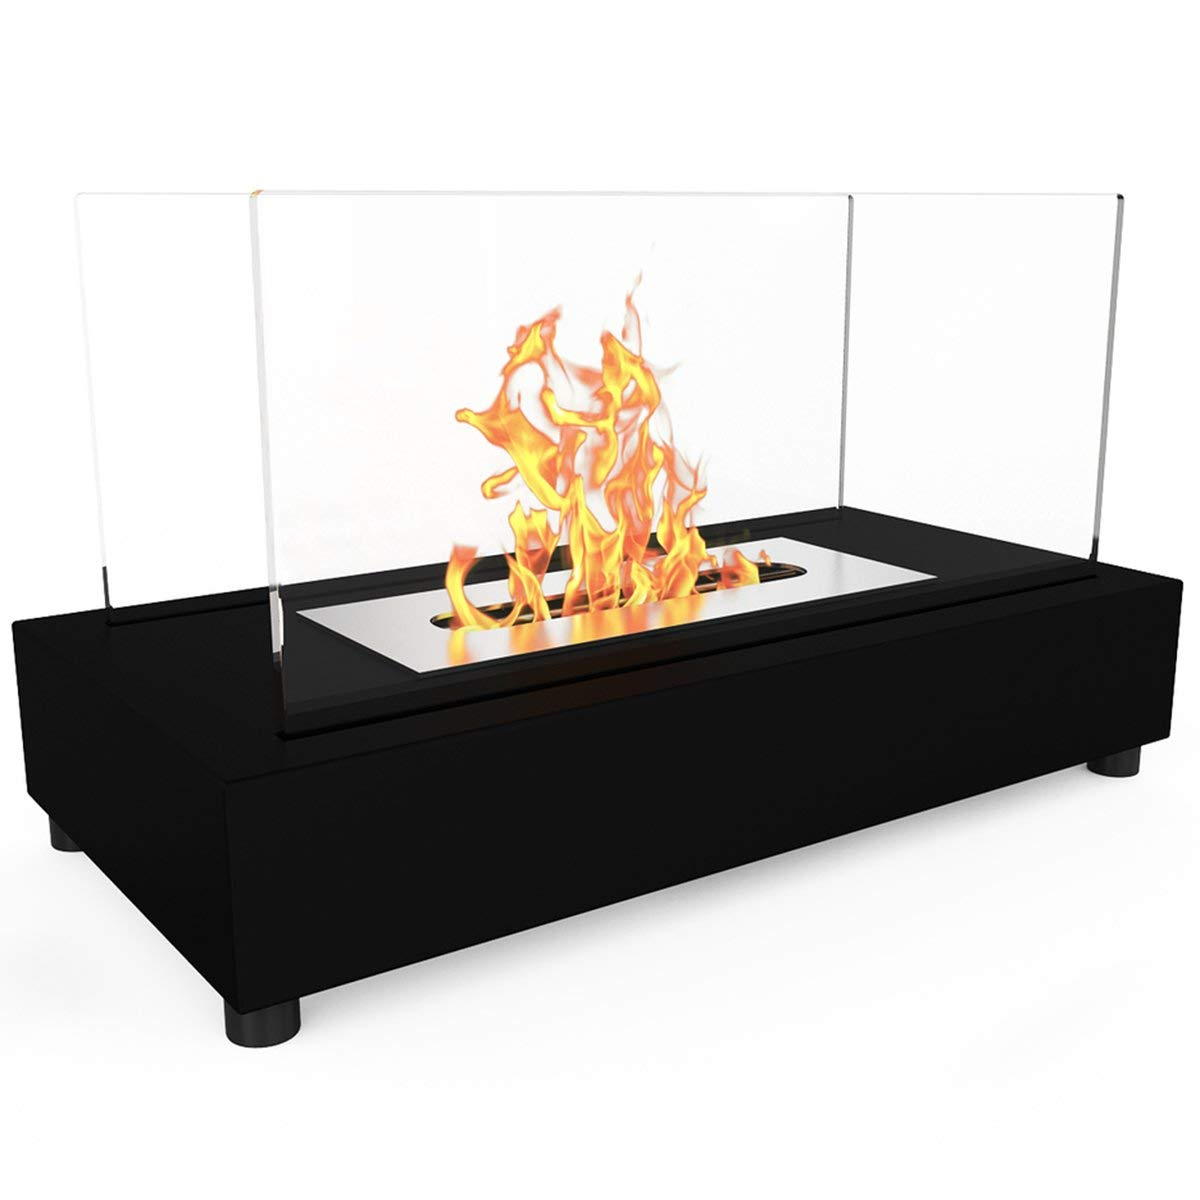 Regal Flame Avon Ventless Indoor Outdoor Fire Pit Tabletop Portable Fire Bowl Pot Bio Ethanol Fireplace in Black - Realistic Clean Burning Like Gel Fireplaces, or Propane Firepits by Regal Flame